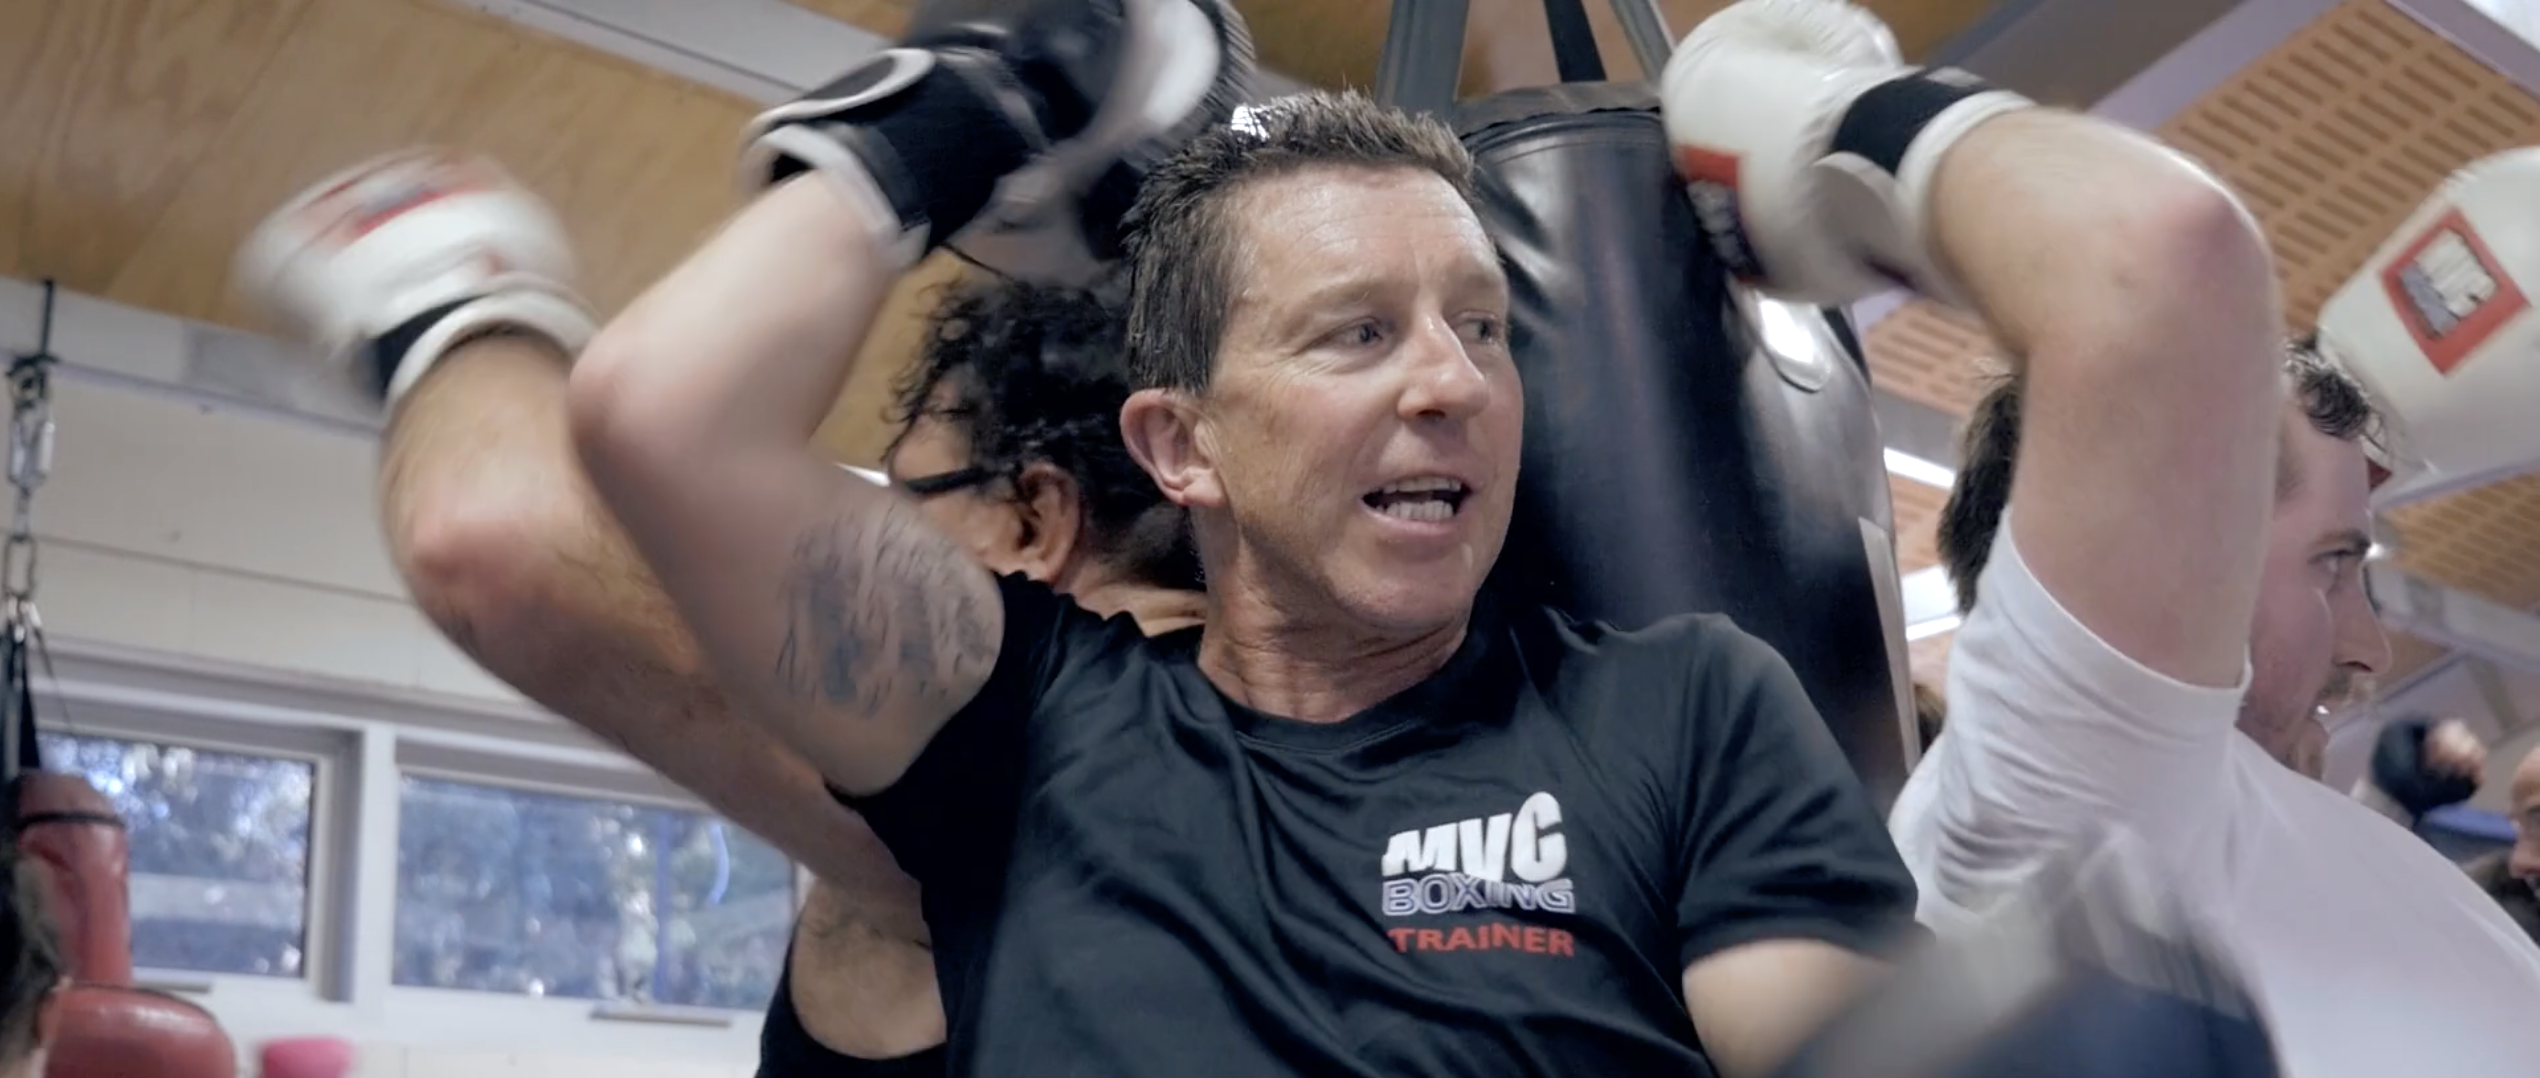 Watch our trainers, they have heart at MVC Boxing